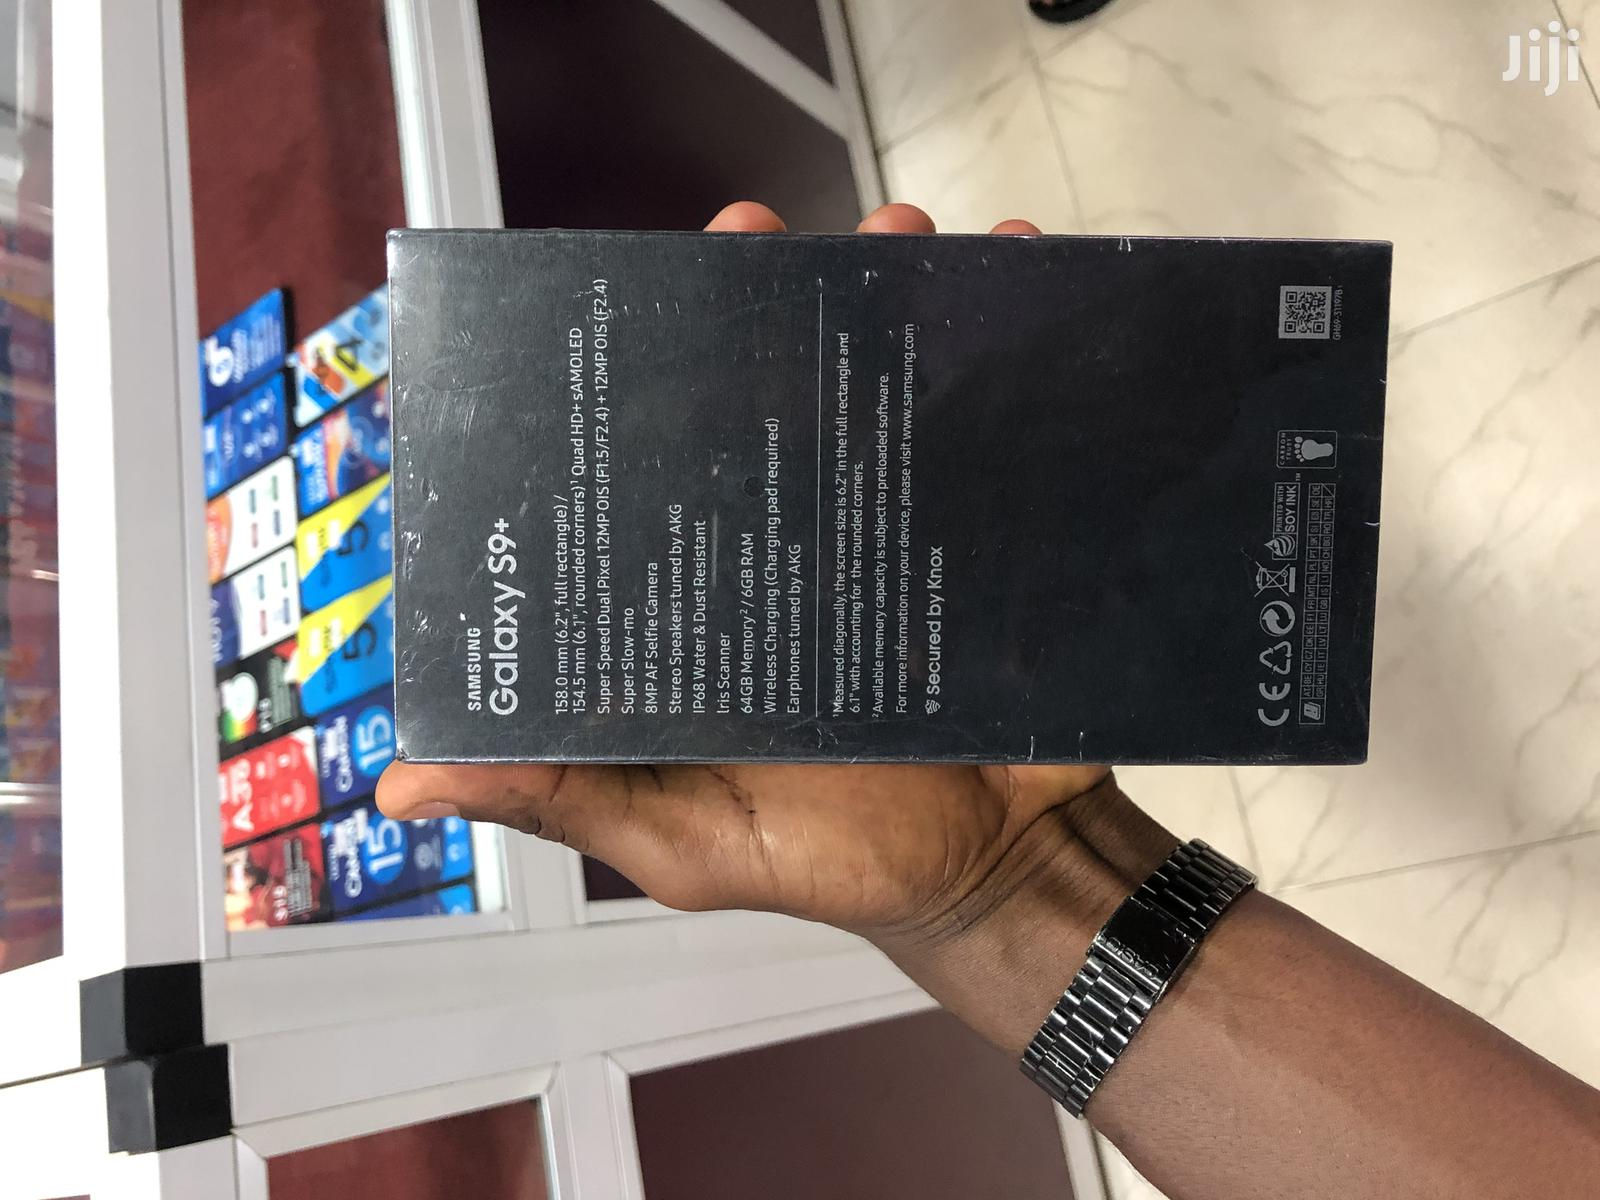 New Samsung Galaxy S9 Plus 64 GB Black | Mobile Phones for sale in Accra Metropolitan, Greater Accra, Ghana